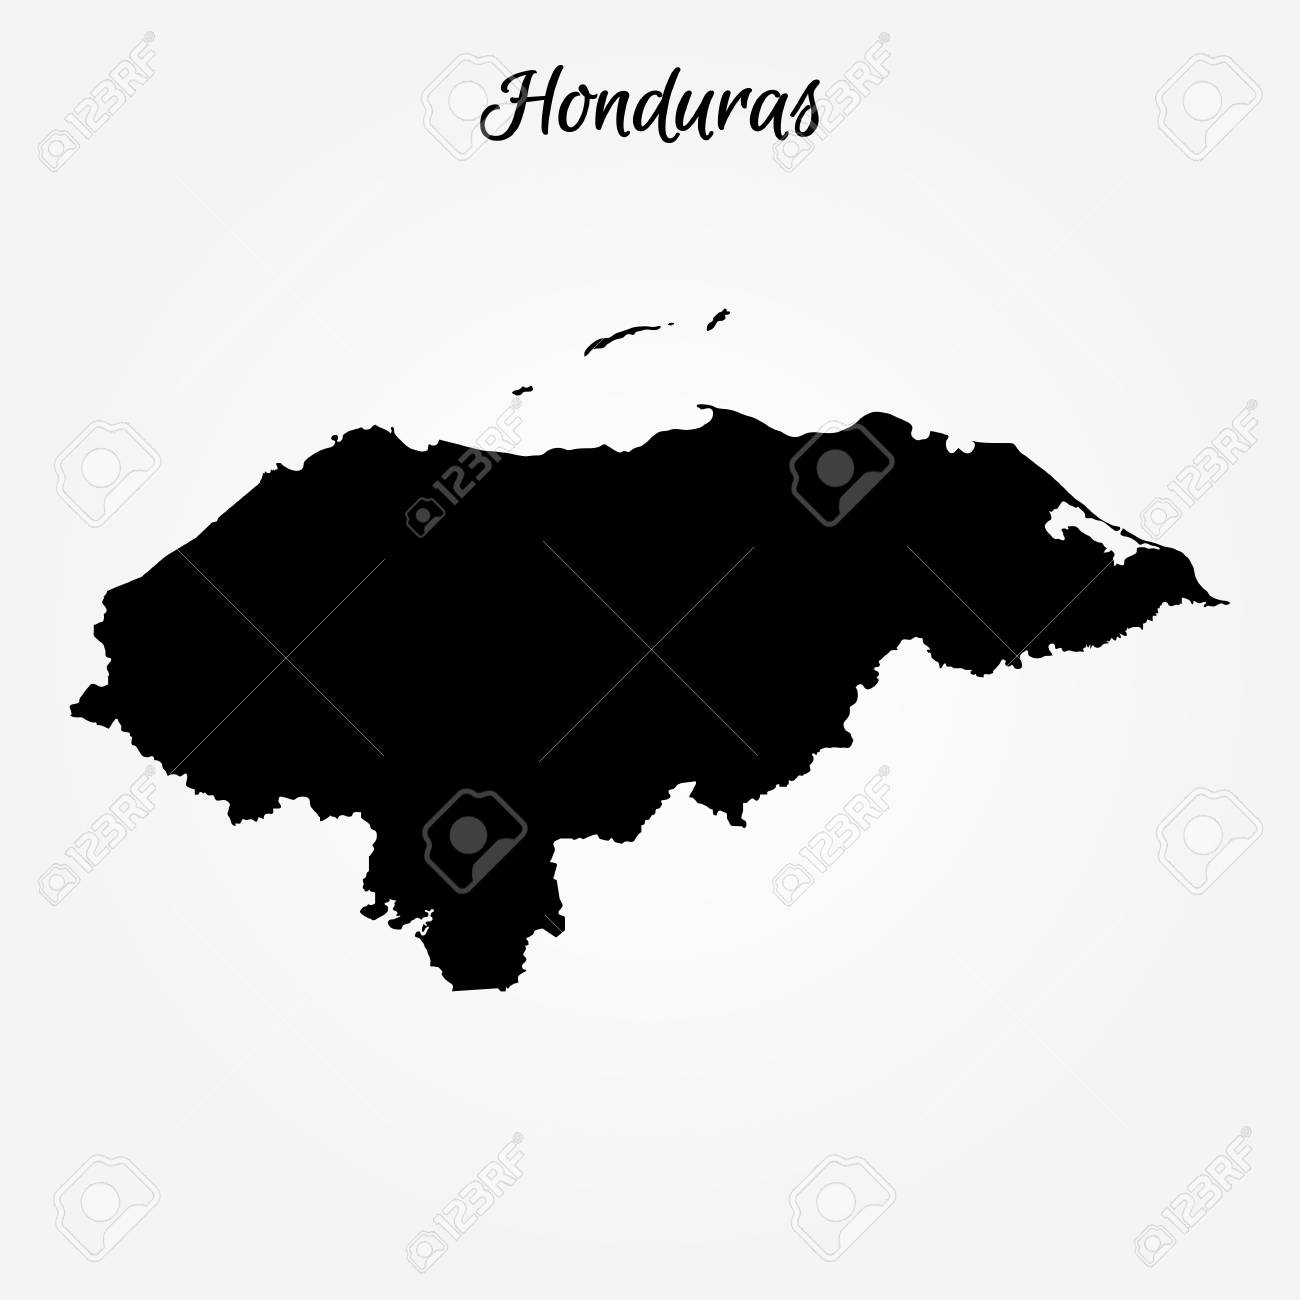 Map of honduras vector illustration world map royalty free map of honduras vector illustration world map stock vector 95301099 gumiabroncs